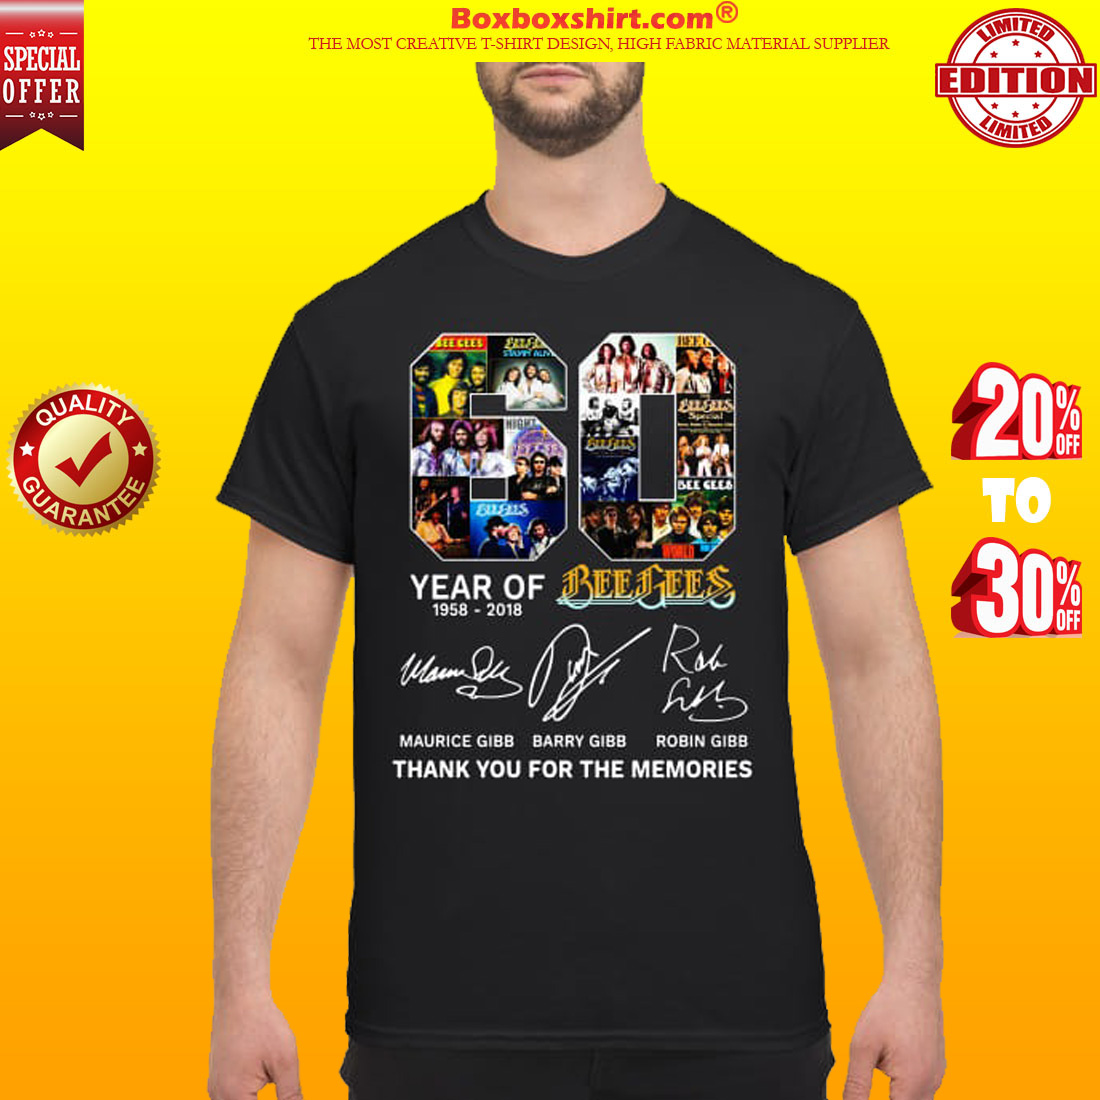 60 years of Bee Gees Thank you for the memories classic shirt